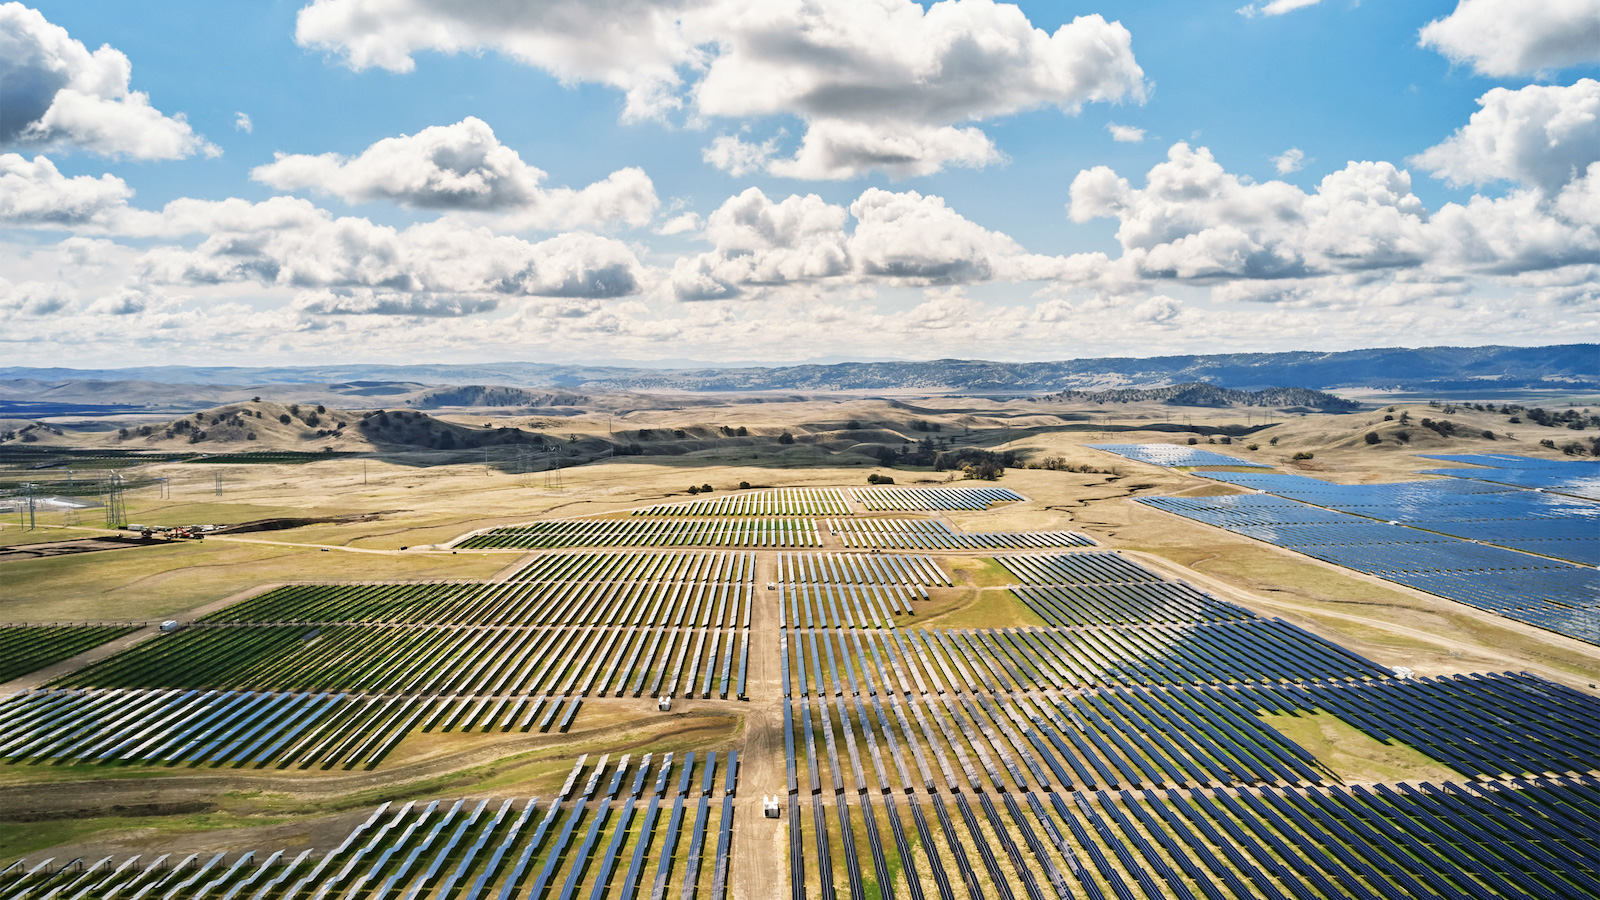 Apple announces new climate efforts with over 110 suppliers transitioning to renewable energy 033121